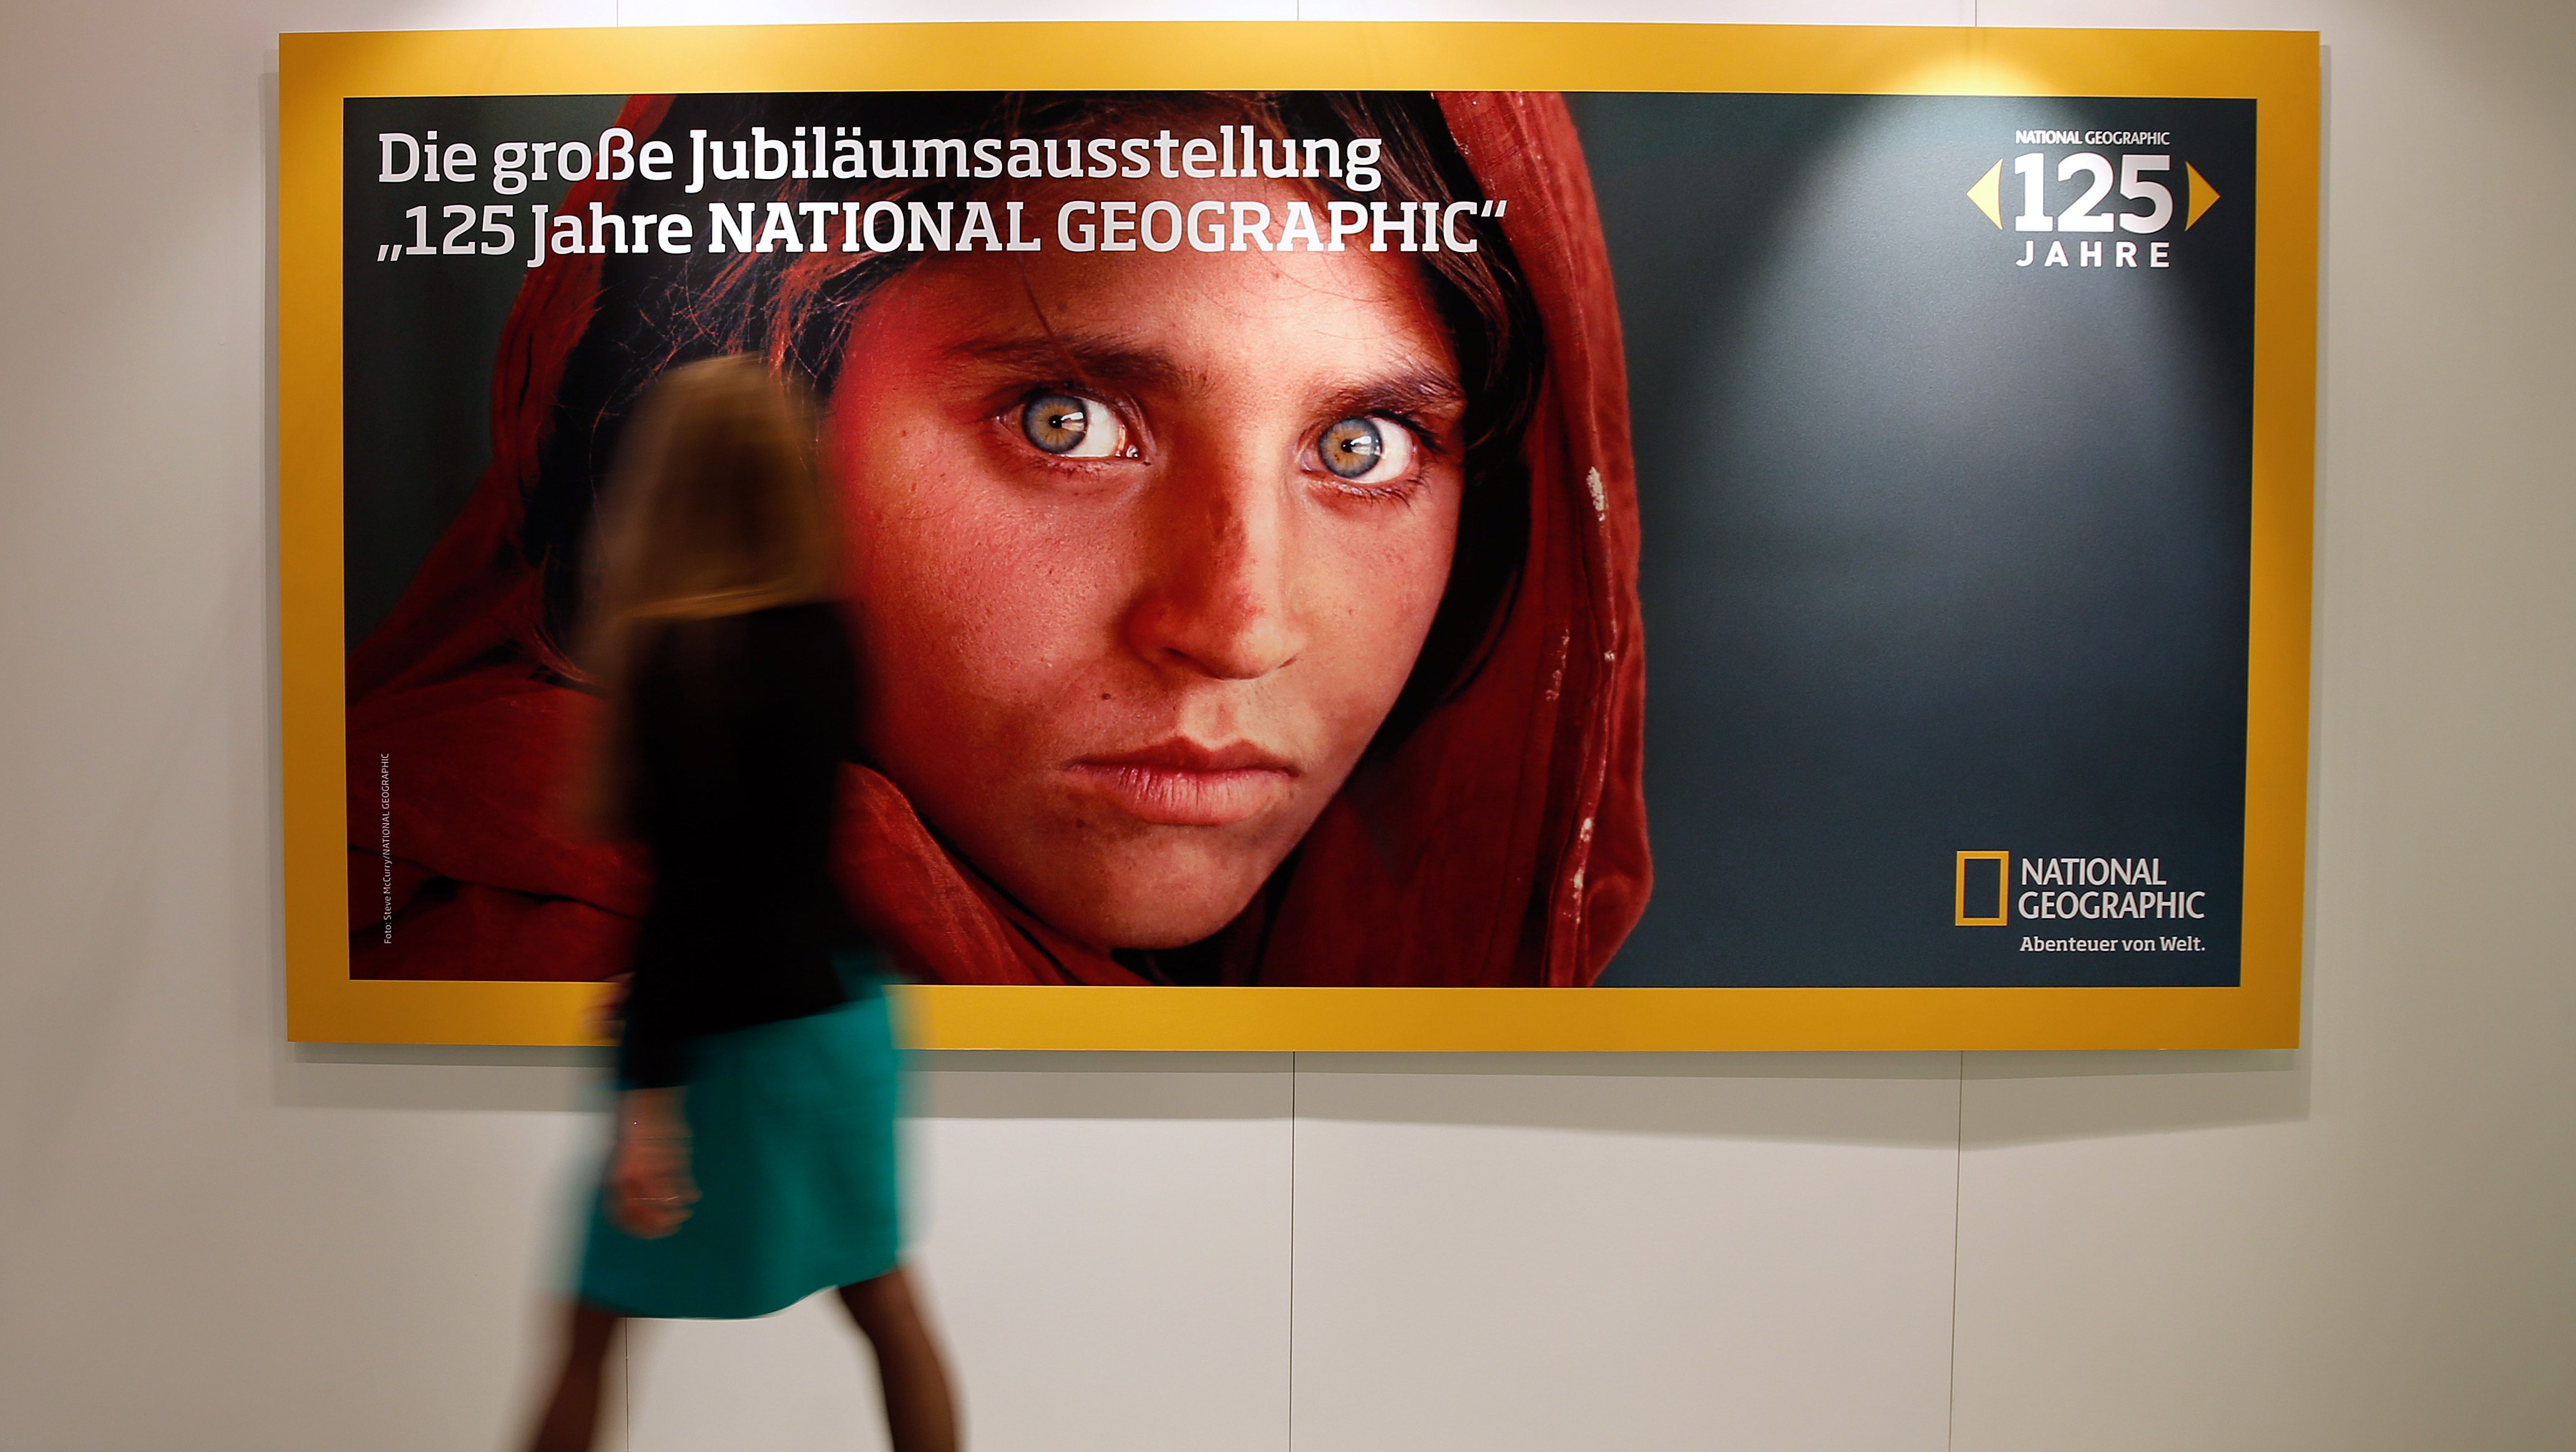 National Geographic notes its racist coverage of black, people of